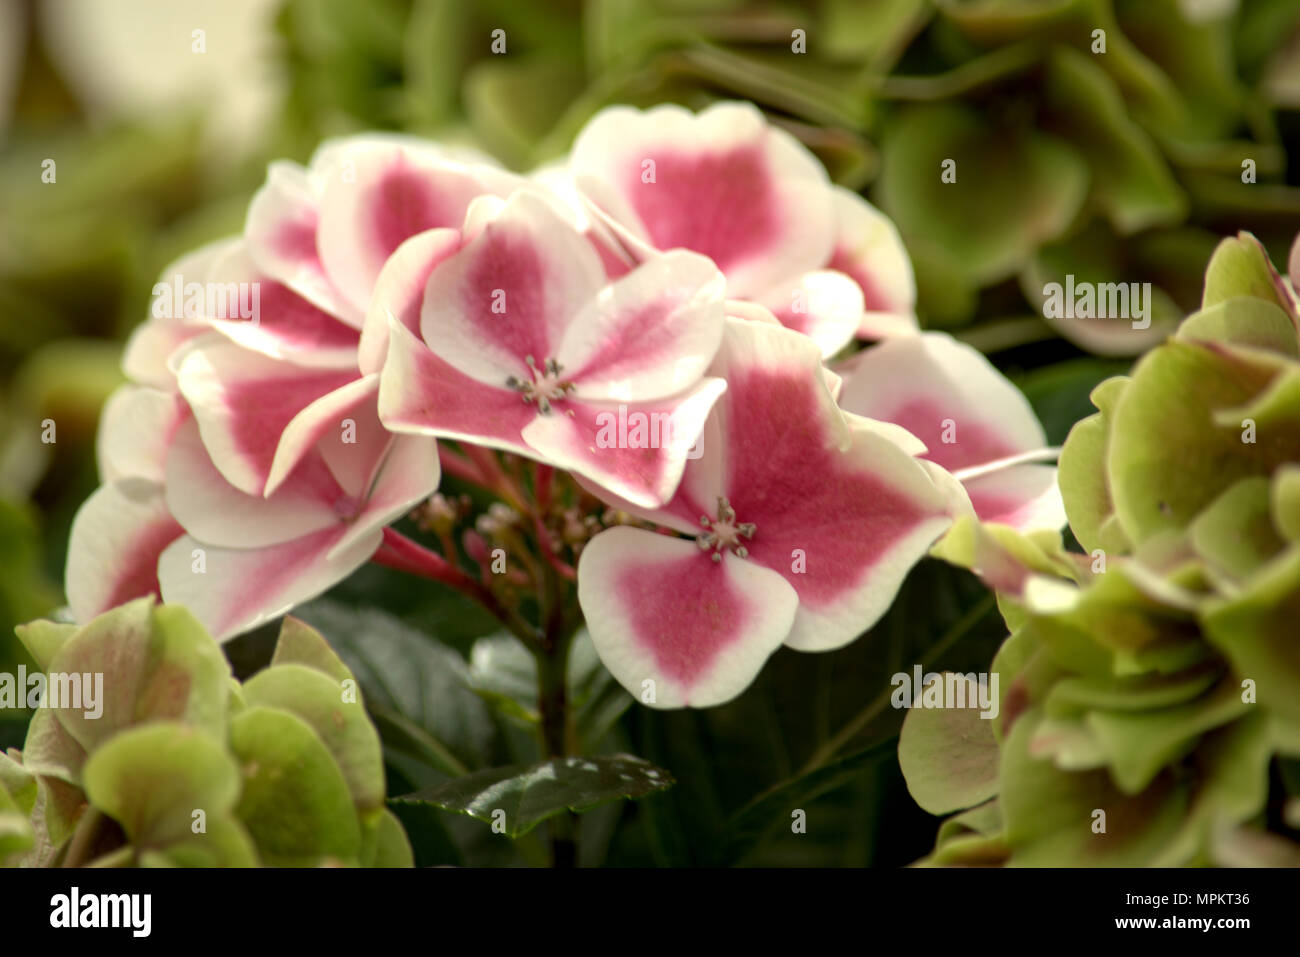 Candy Pink And White Striped Flowers Stock Photos Candy Pink And